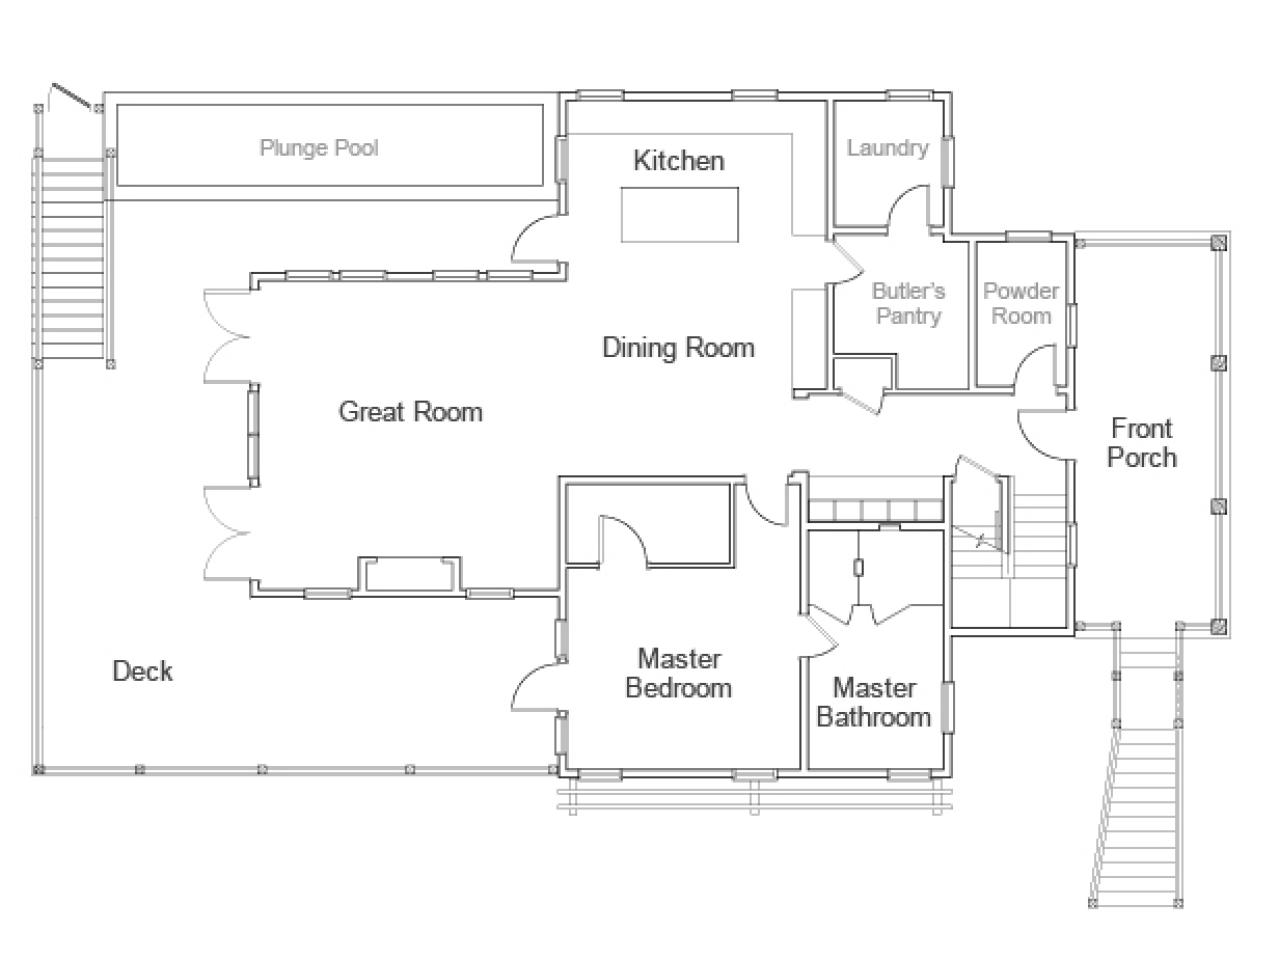 Hgtv dream home 2013 floor plan pictures and video from Dream house floor plans